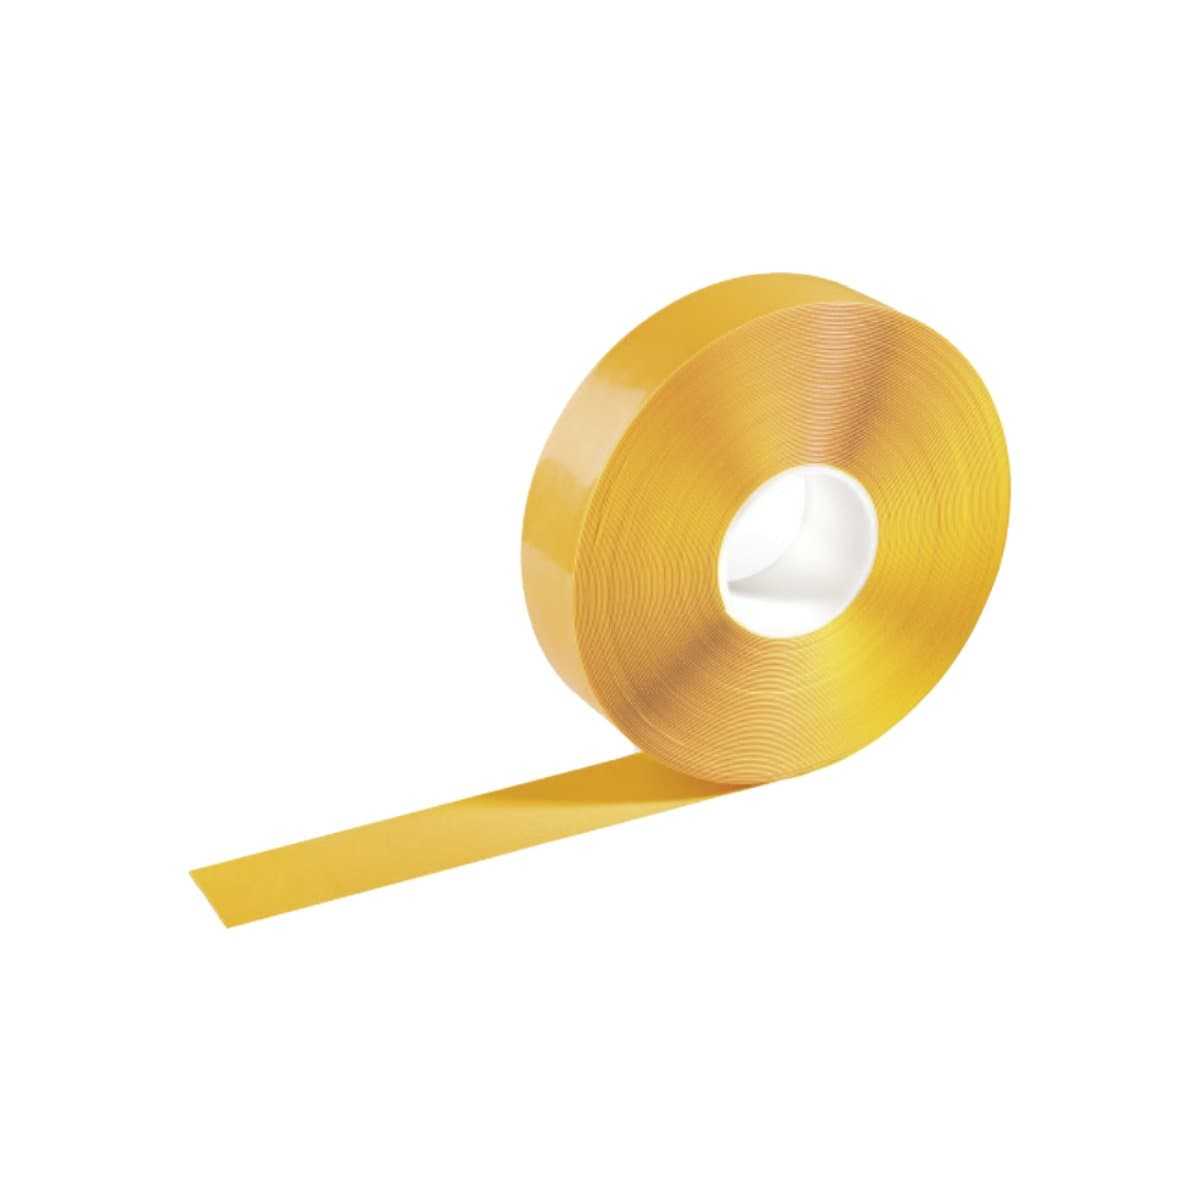 Durable DURALINE strong self-adhesive permanent marking Tape, 50mm x 30m, Yellow